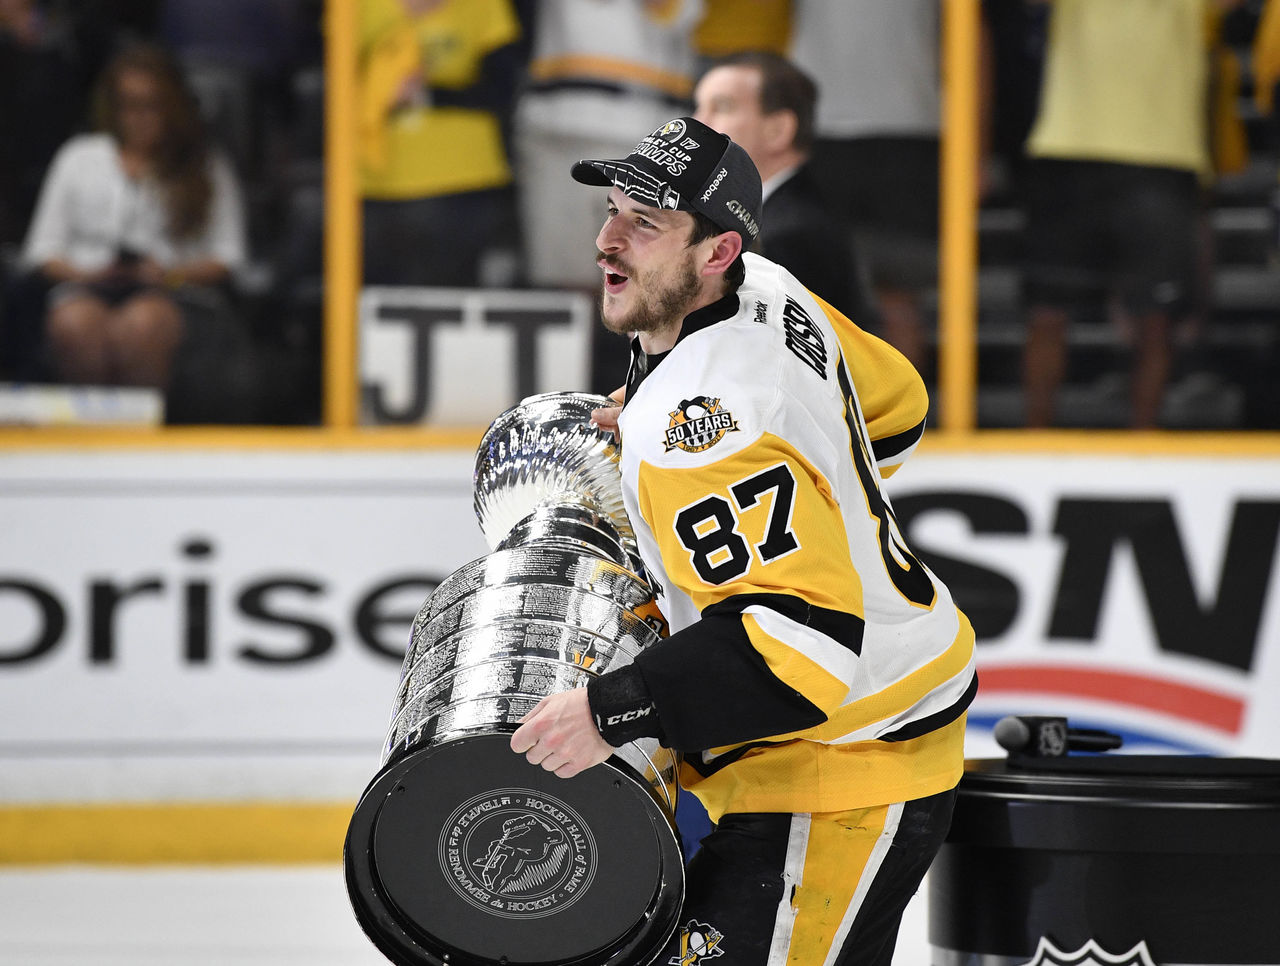 Cropped 2017 06 12t032213z 400203789 nocid rtrmadp 3 nhl stanley cup final pittsburgh penguins at nashville predators